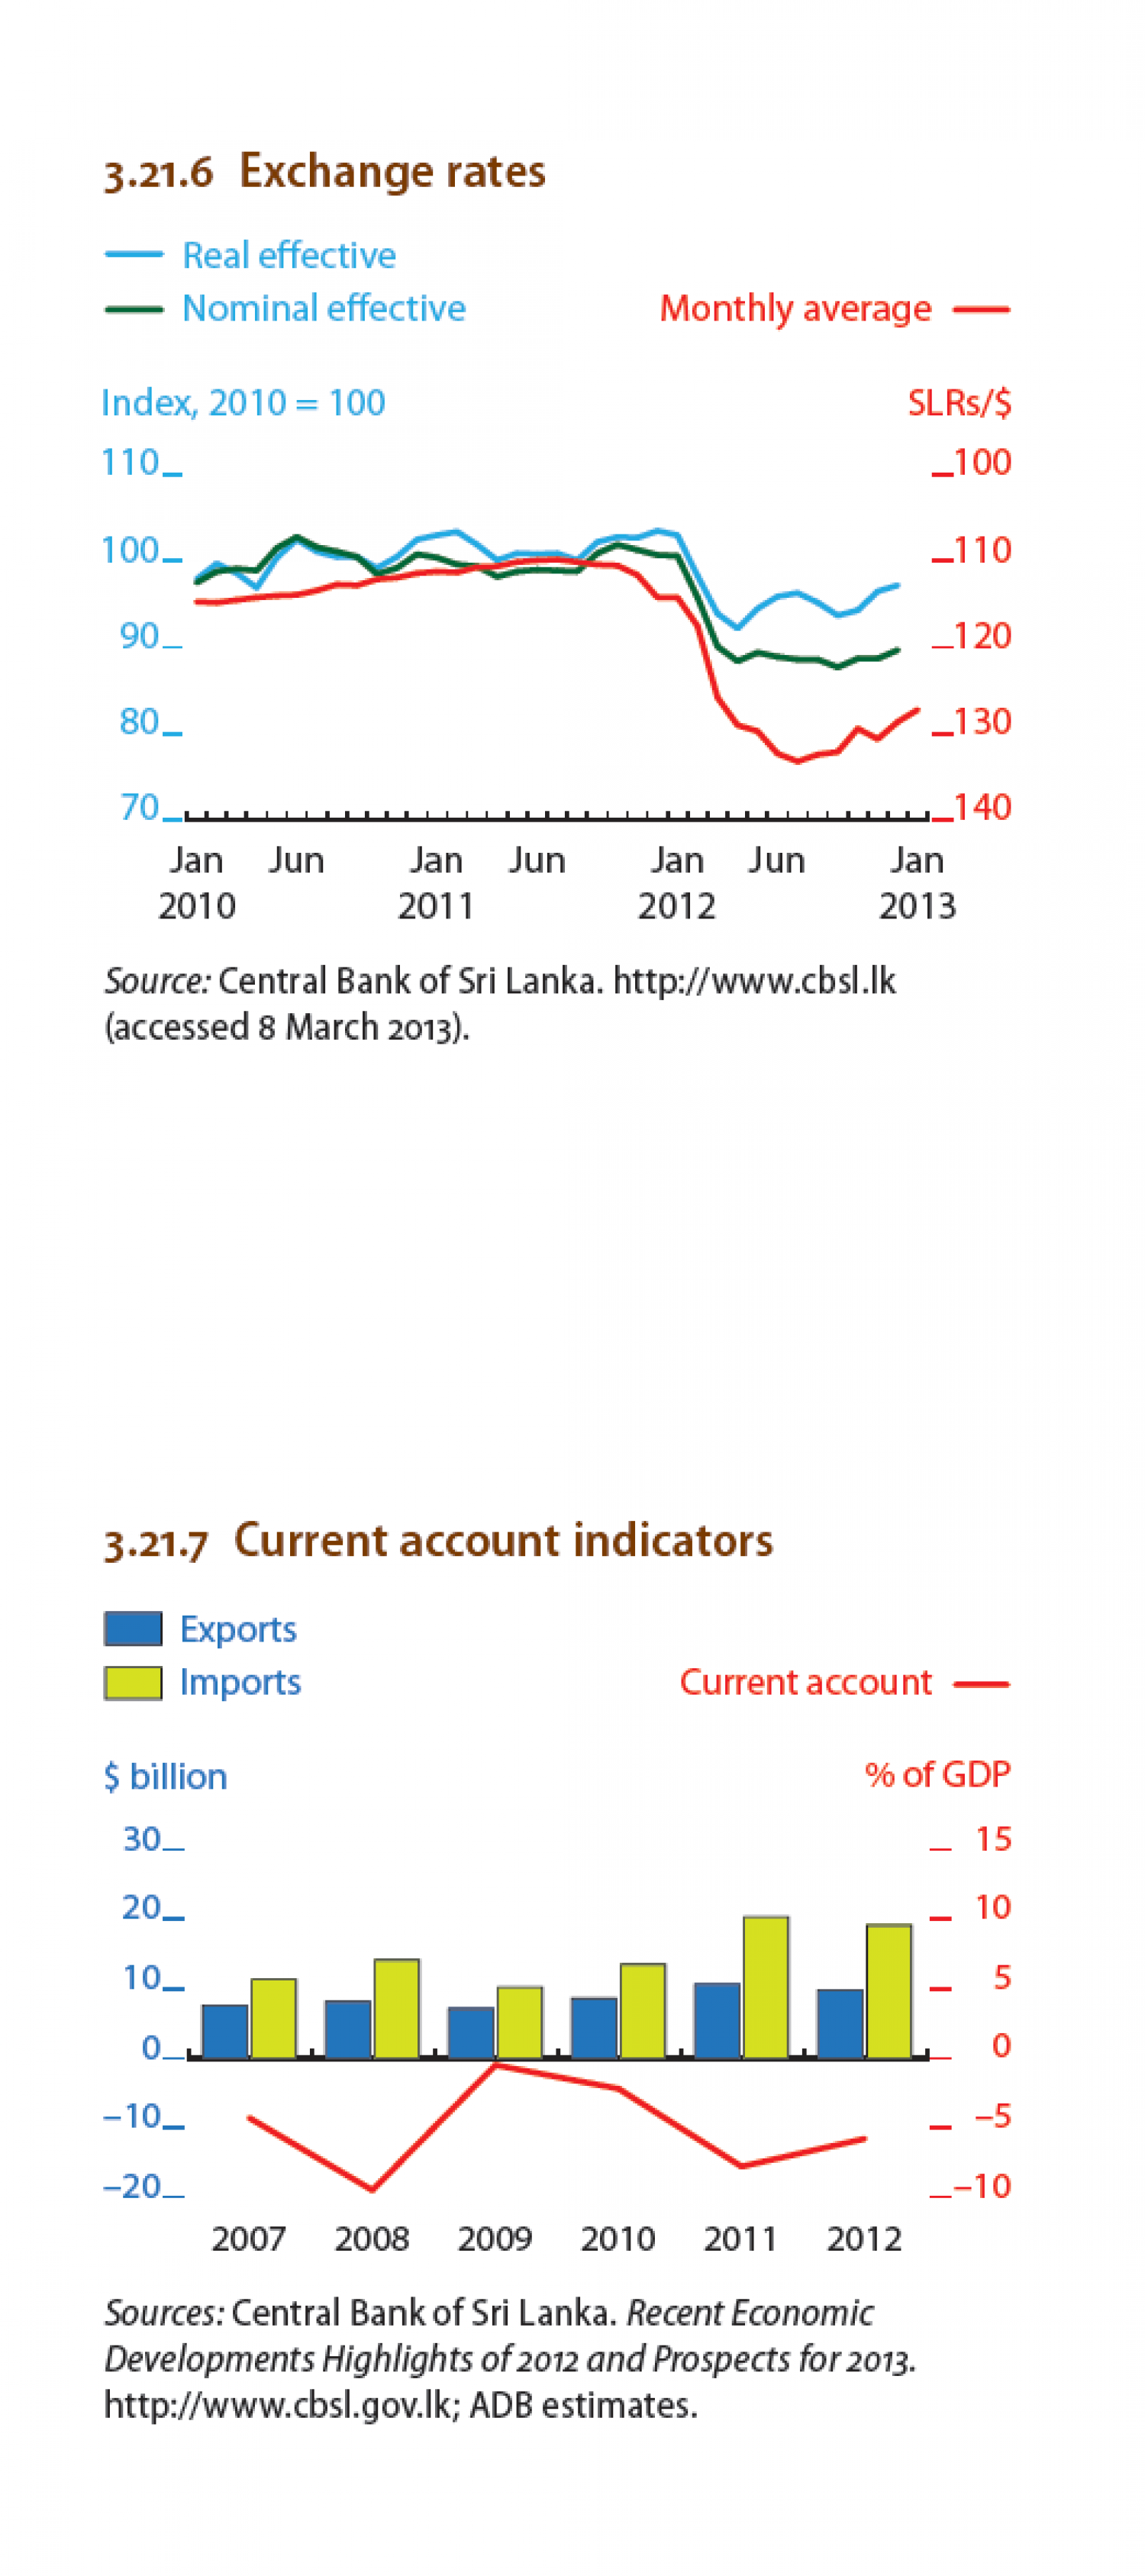 Sri Lanka - Exhange rates,Current account Indicators Infographic